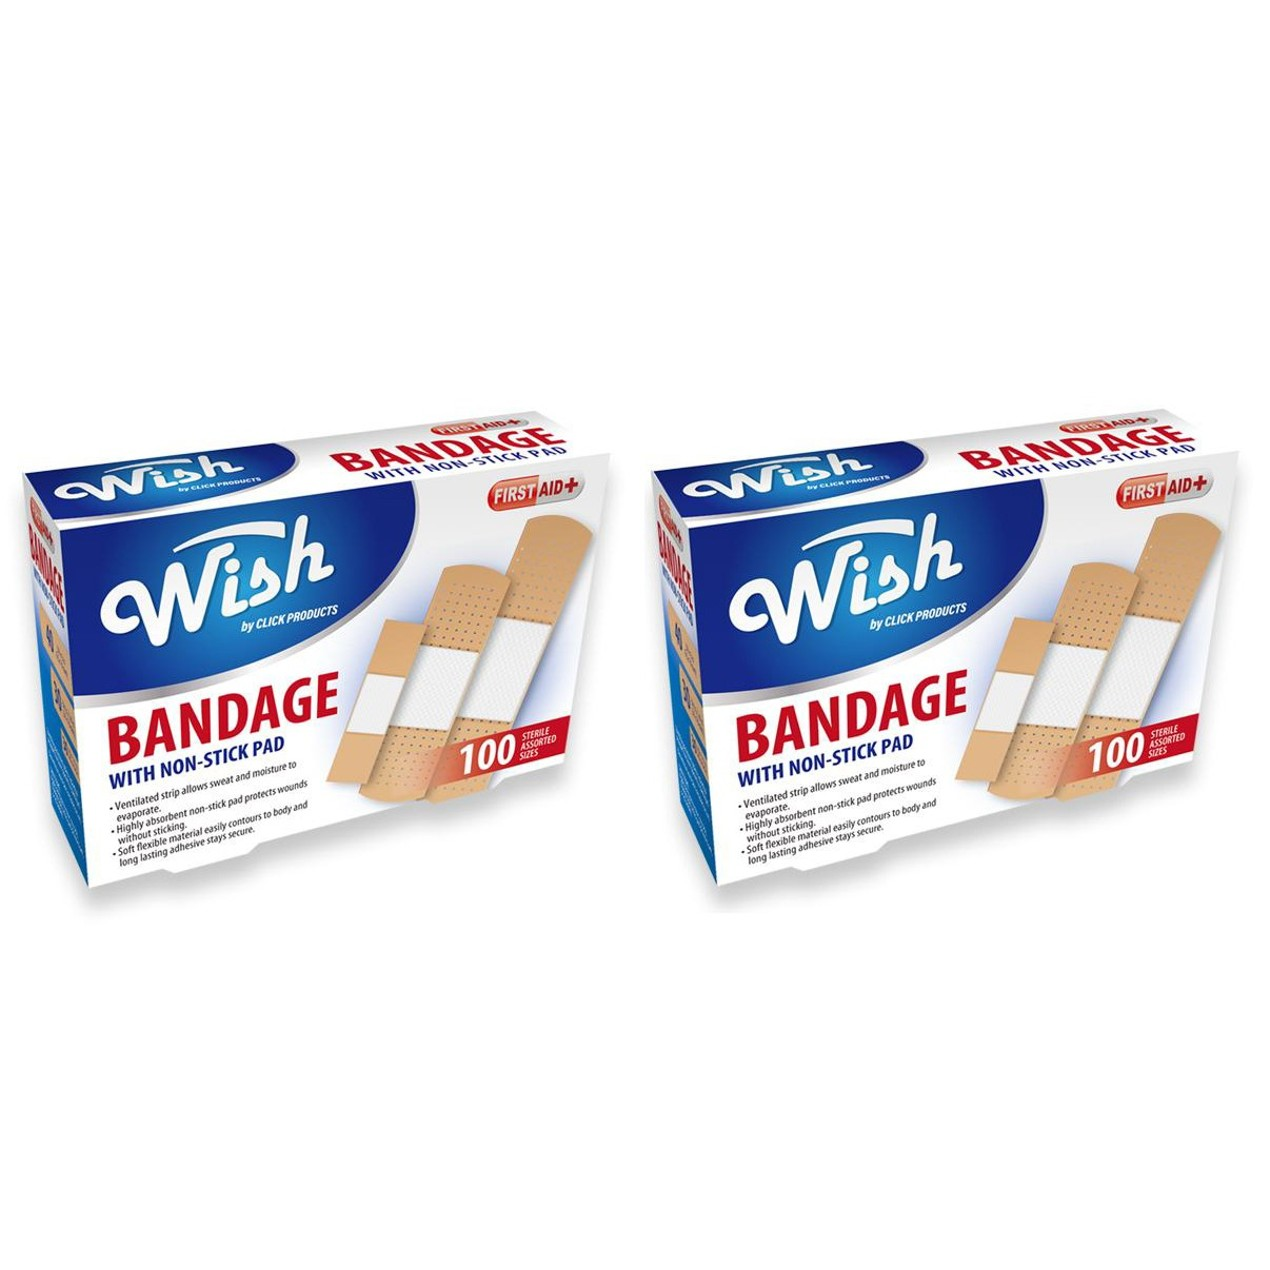 200-Count Flexible Bandages for Wound Care & First Aid